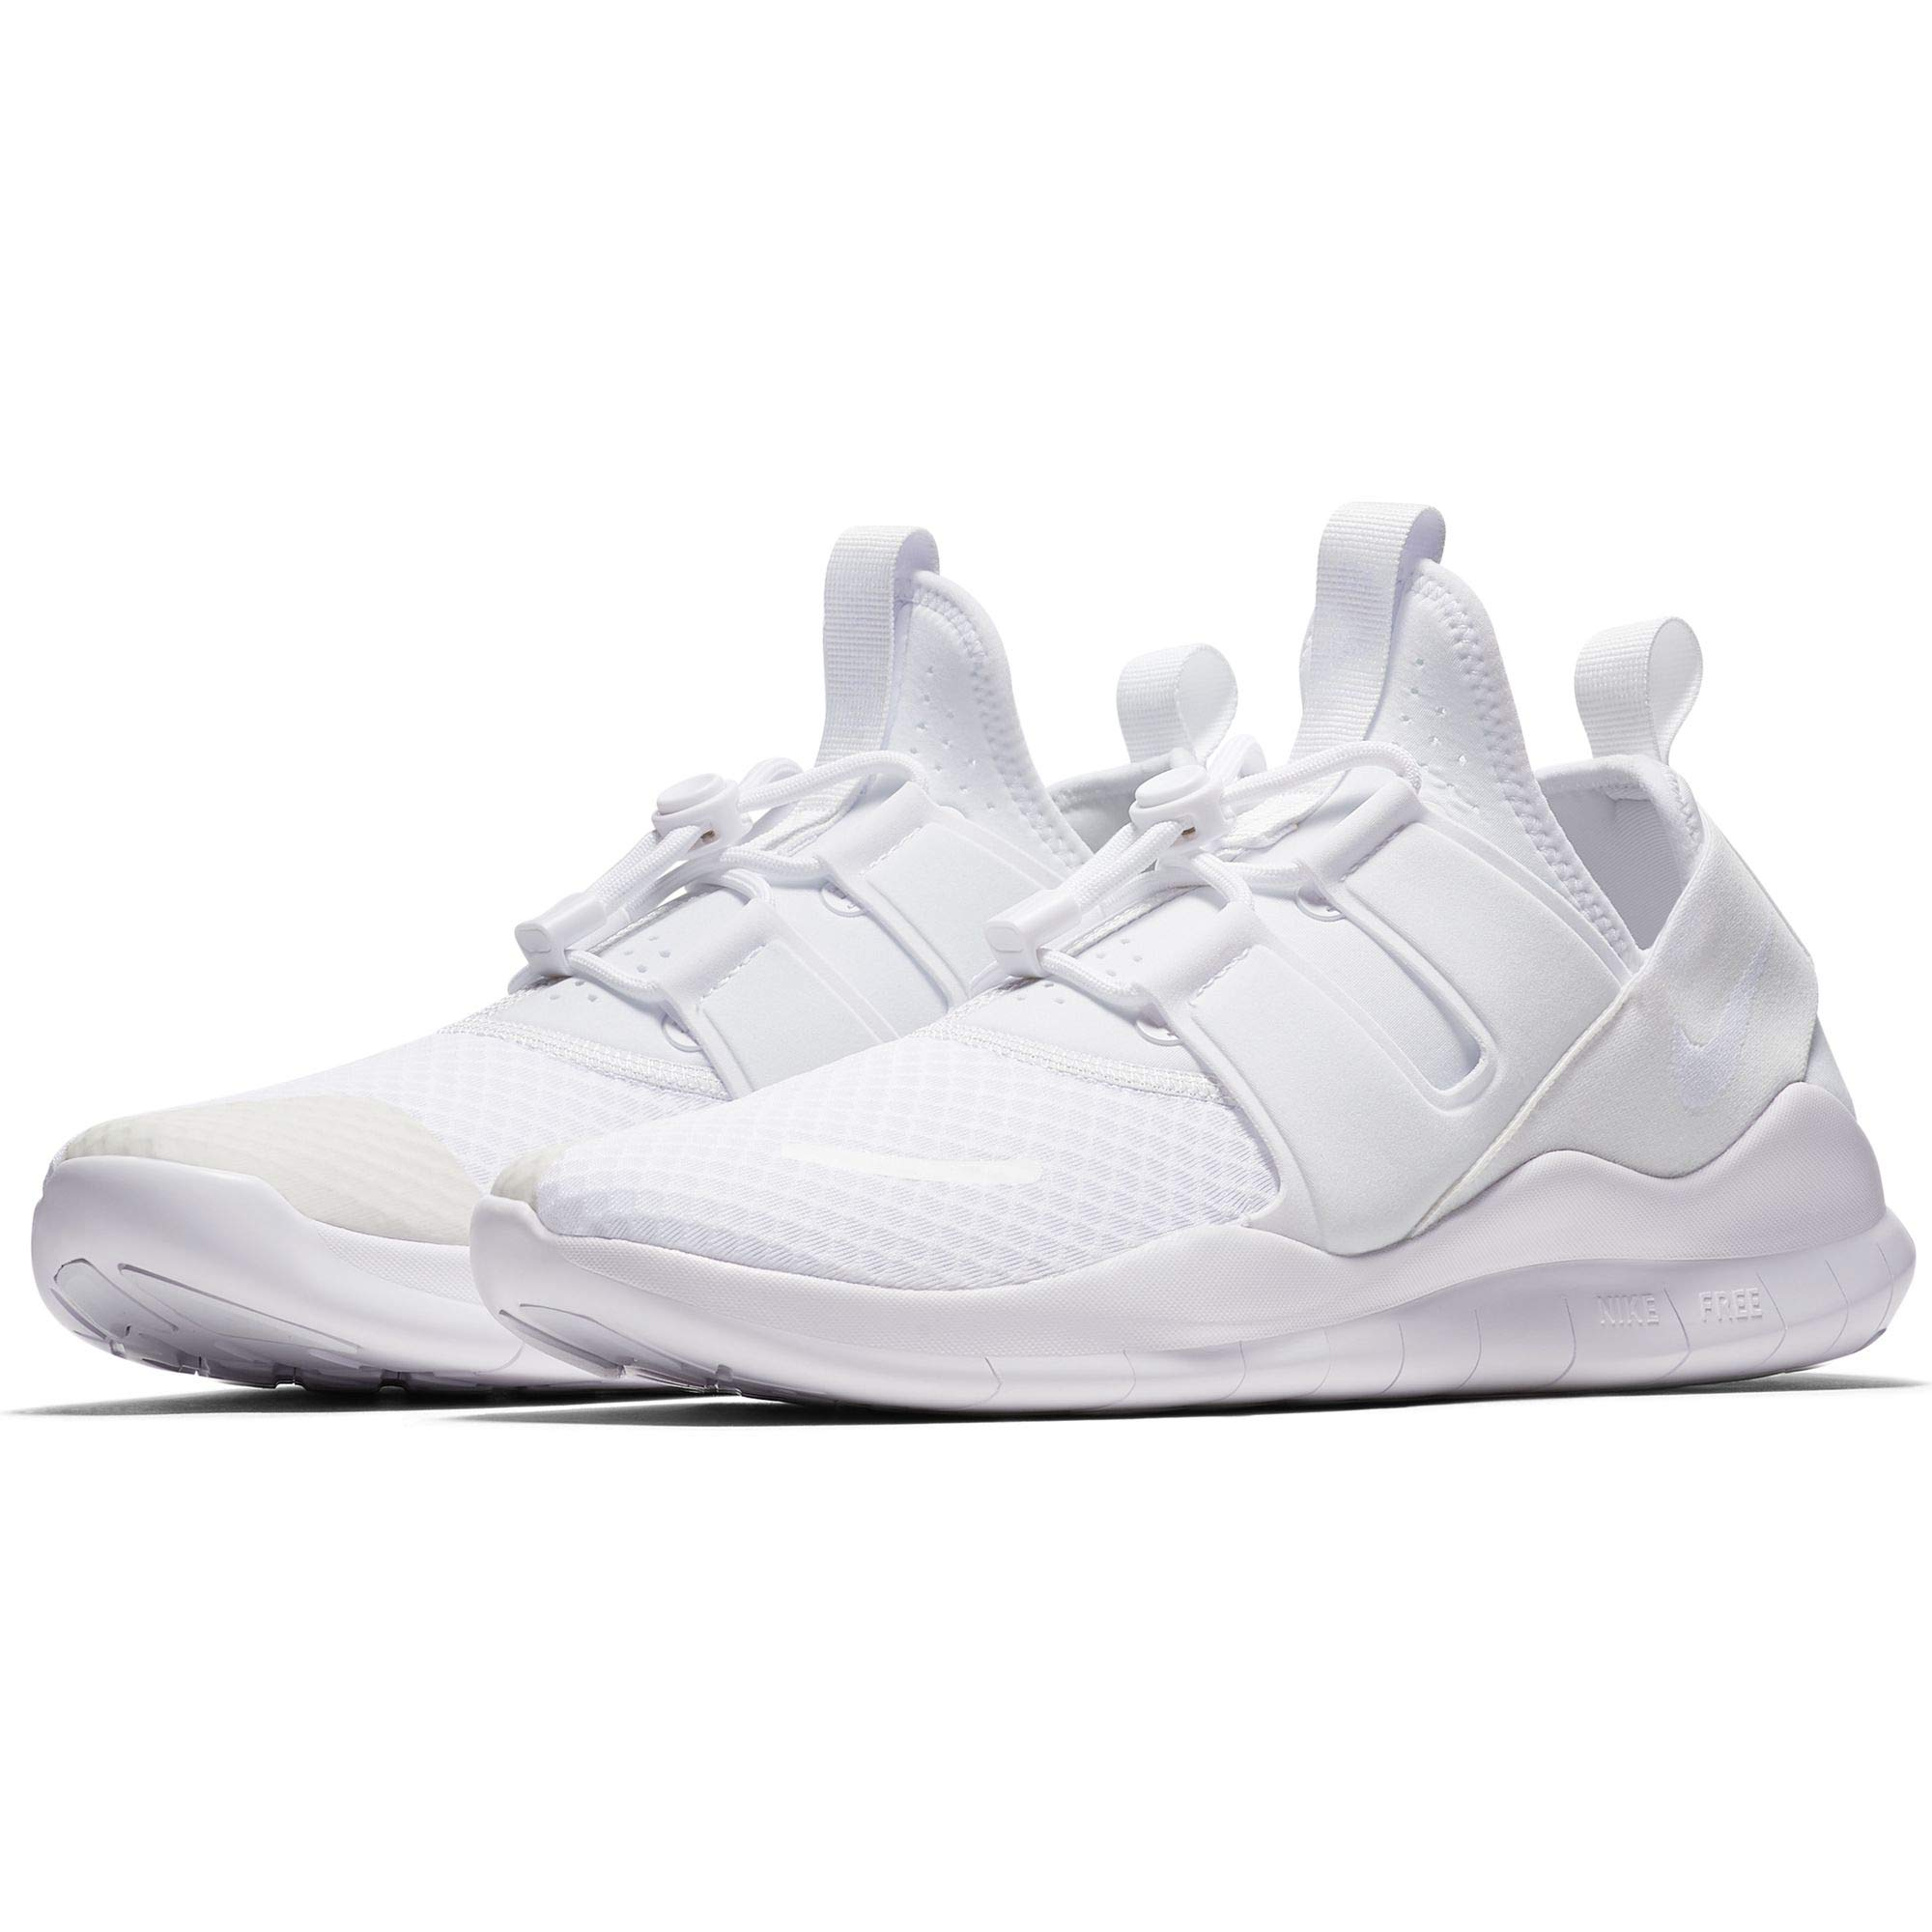 cc24a4125d4a0 Galleon - Nike Men s Free RN Commuter 2018 White Summit White Size 8.5 M US